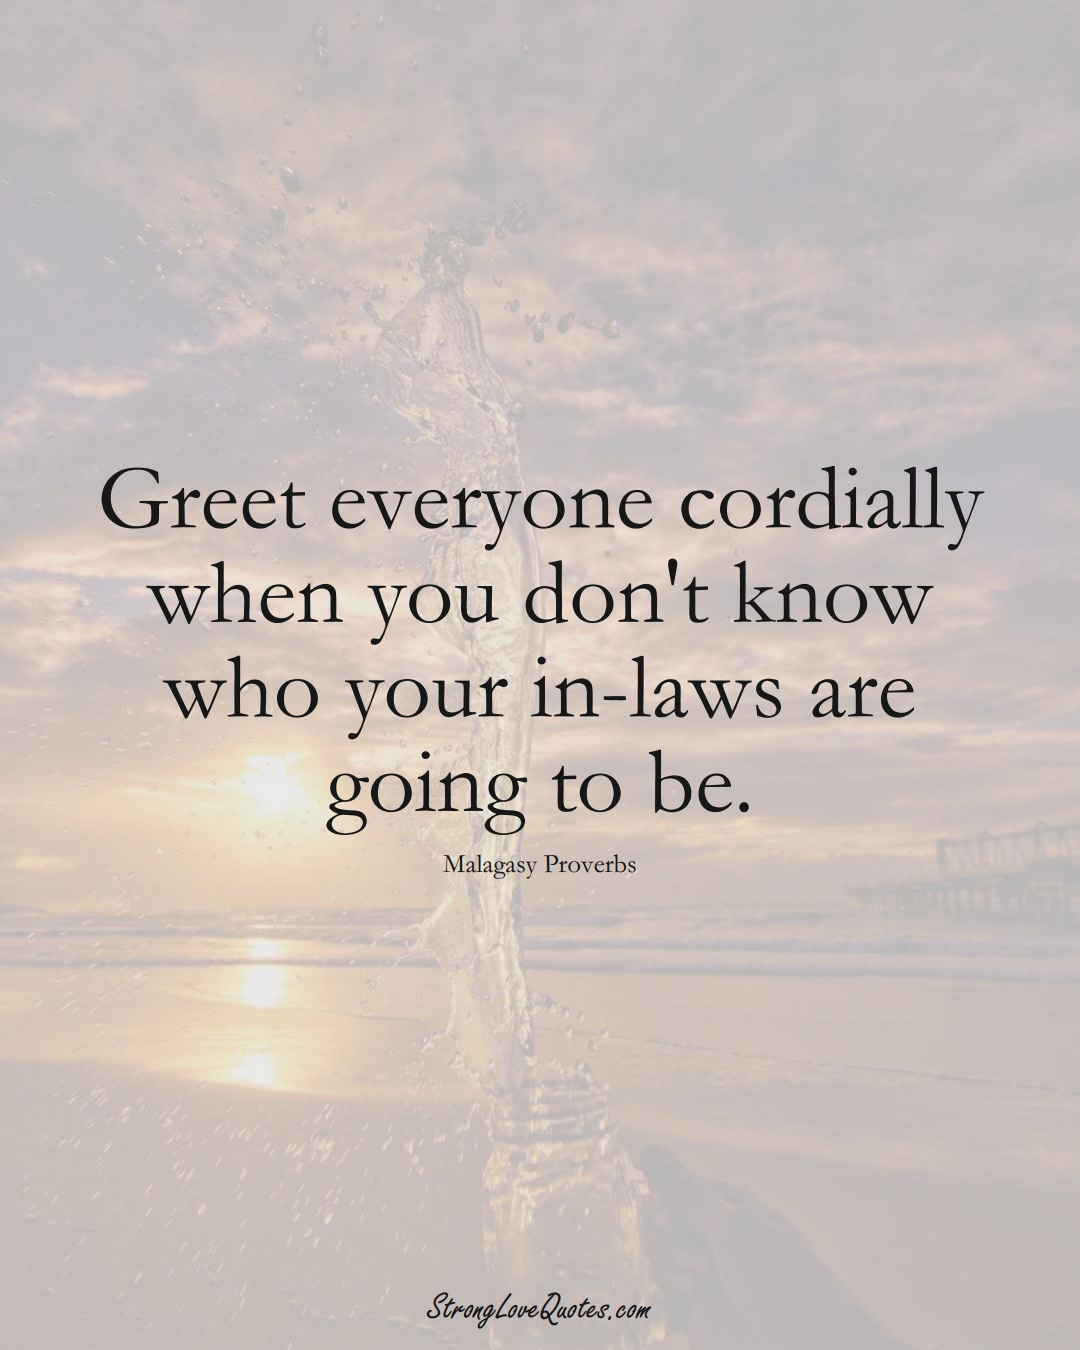 Greet everyone cordially when you don't know who your in-laws are going to be. (Malagasy Sayings);  #AfricanSayings